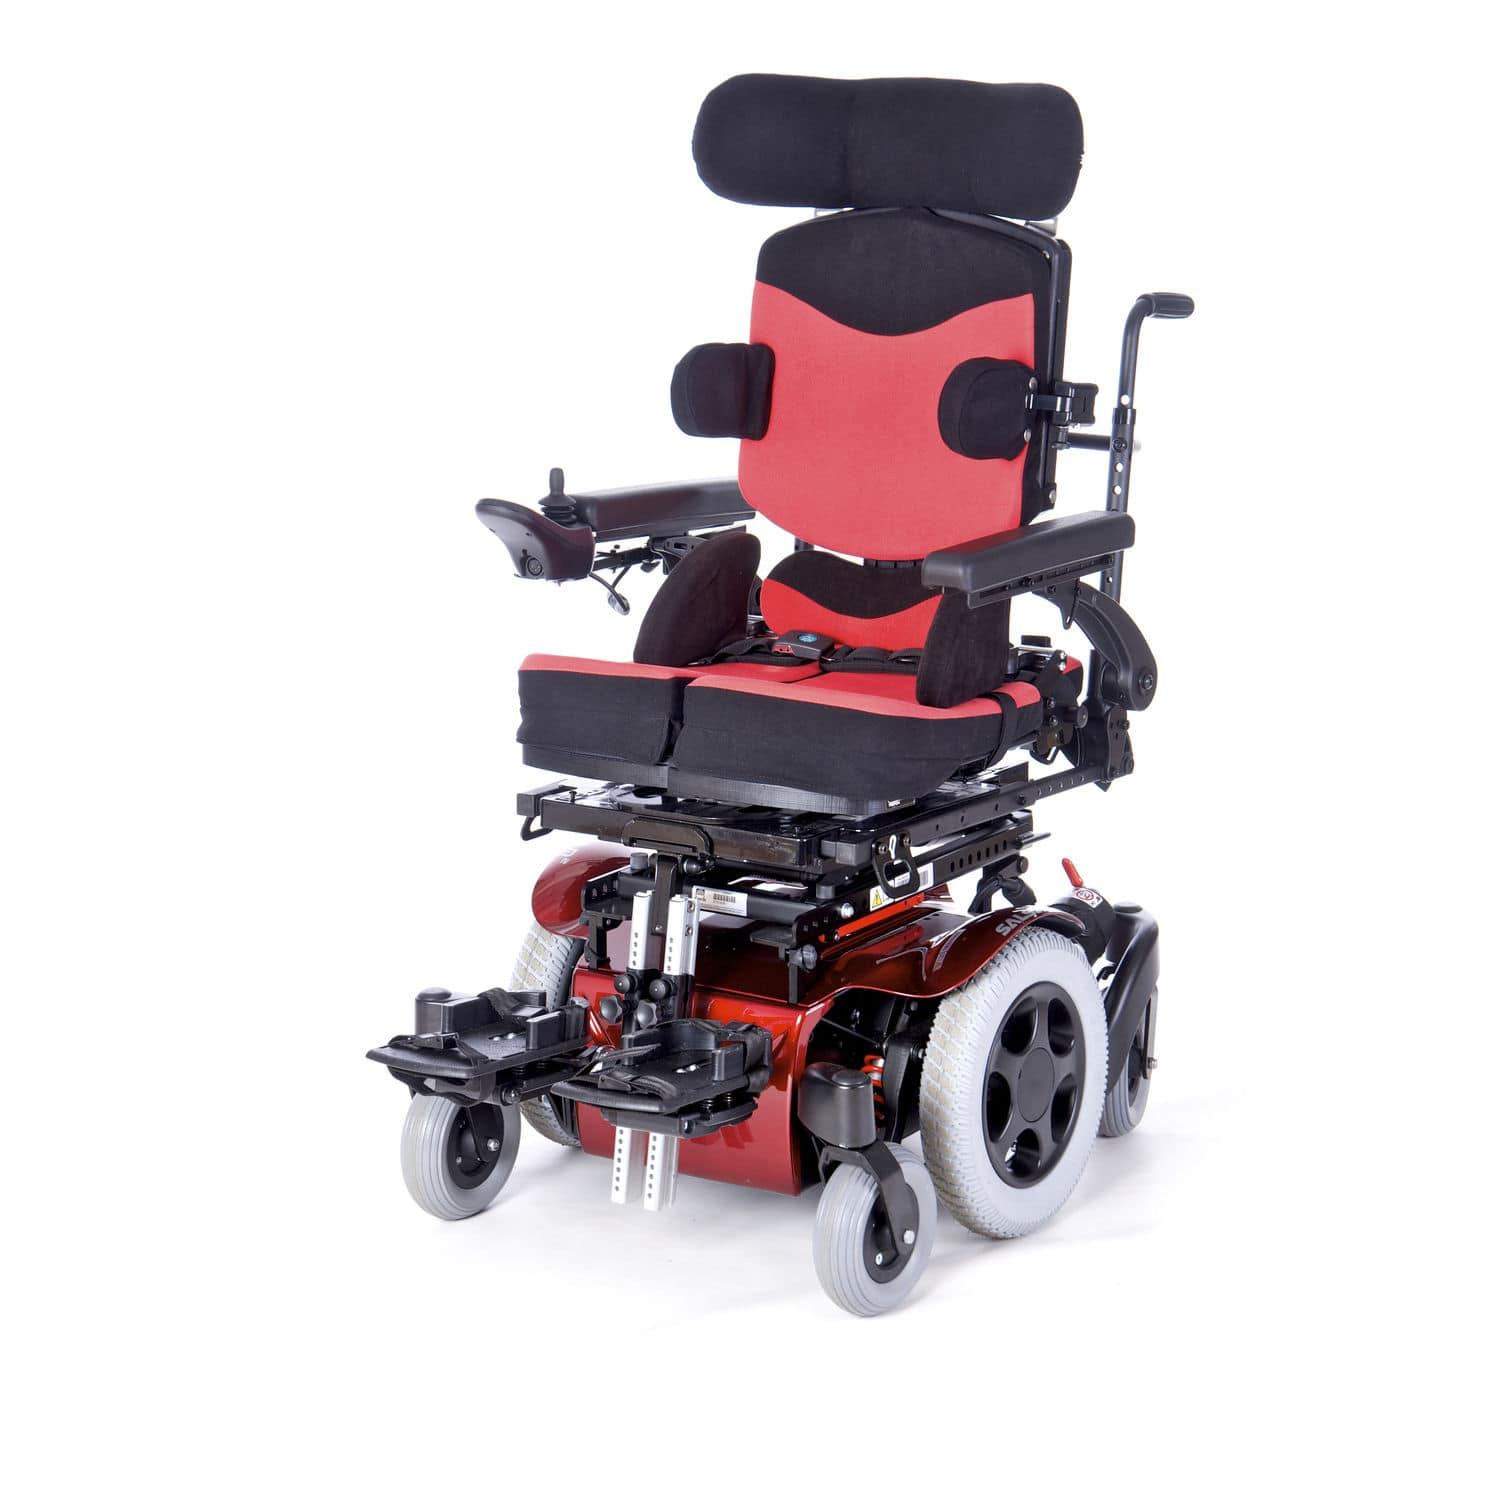 wheelchair base chair for infants electric outdoor indoor with headrest triton zippie salsa m